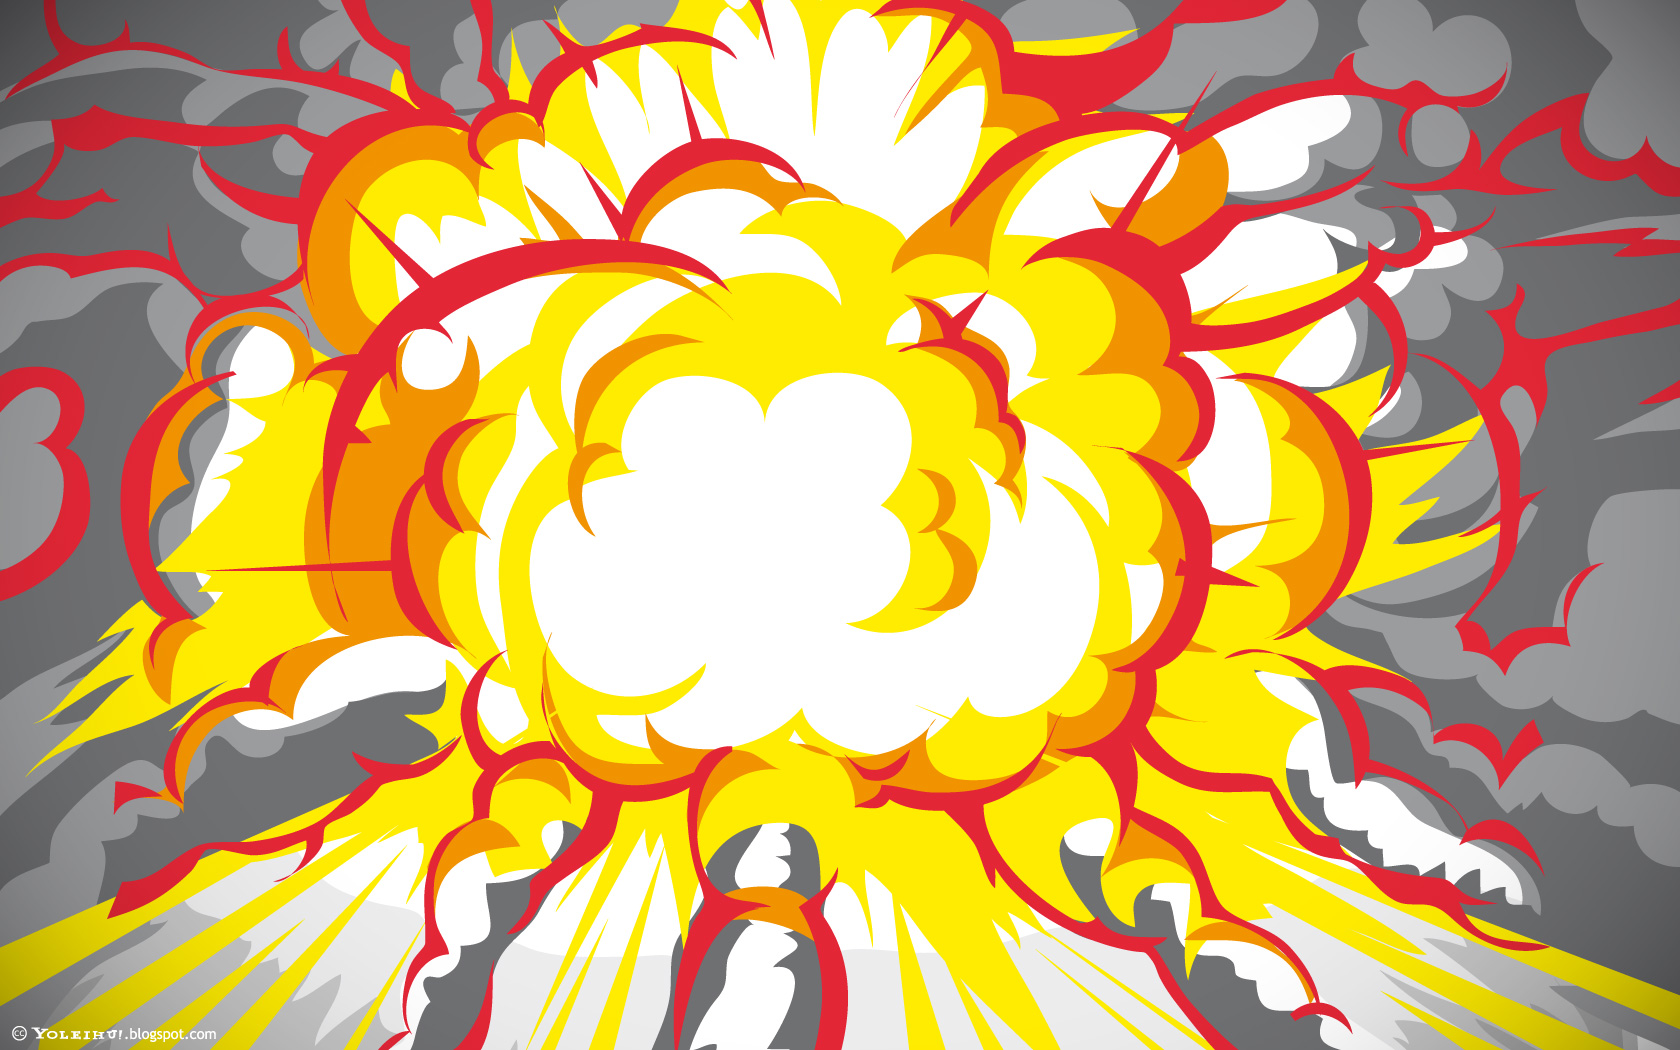 explosion-wide